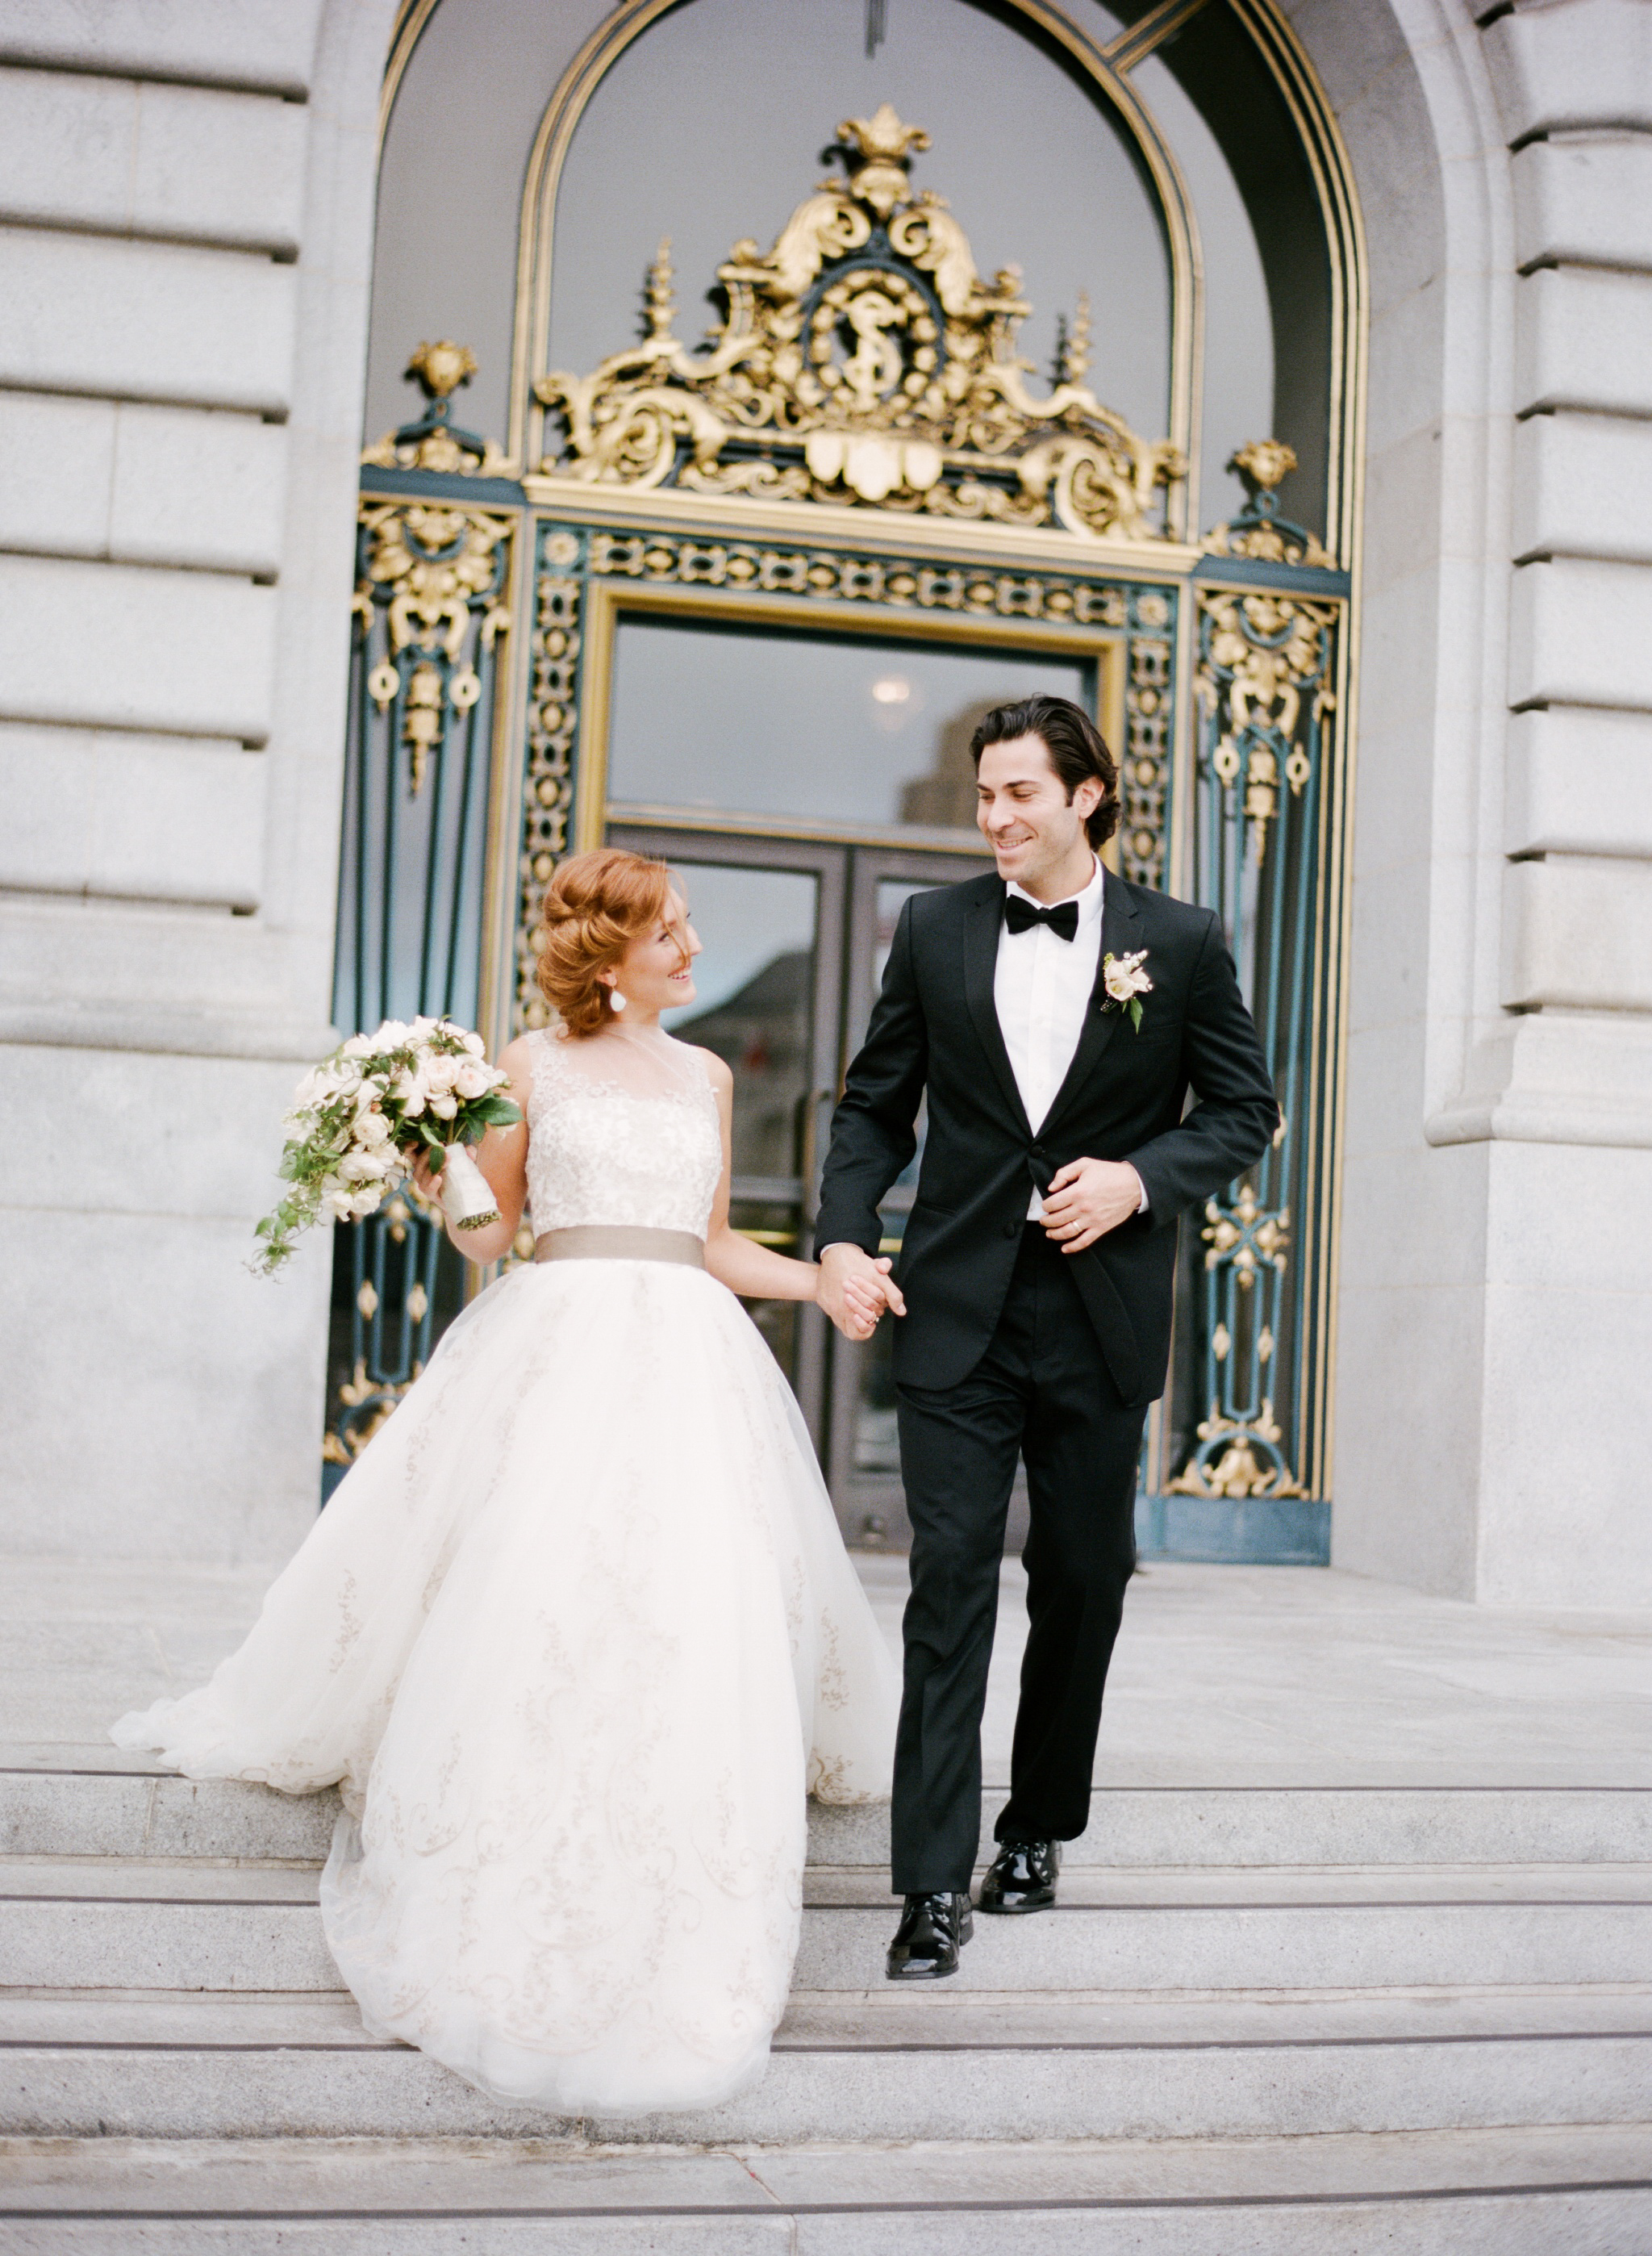 A French couple walks out of San Francisco City Hall just married; Sylvie Gil Photography